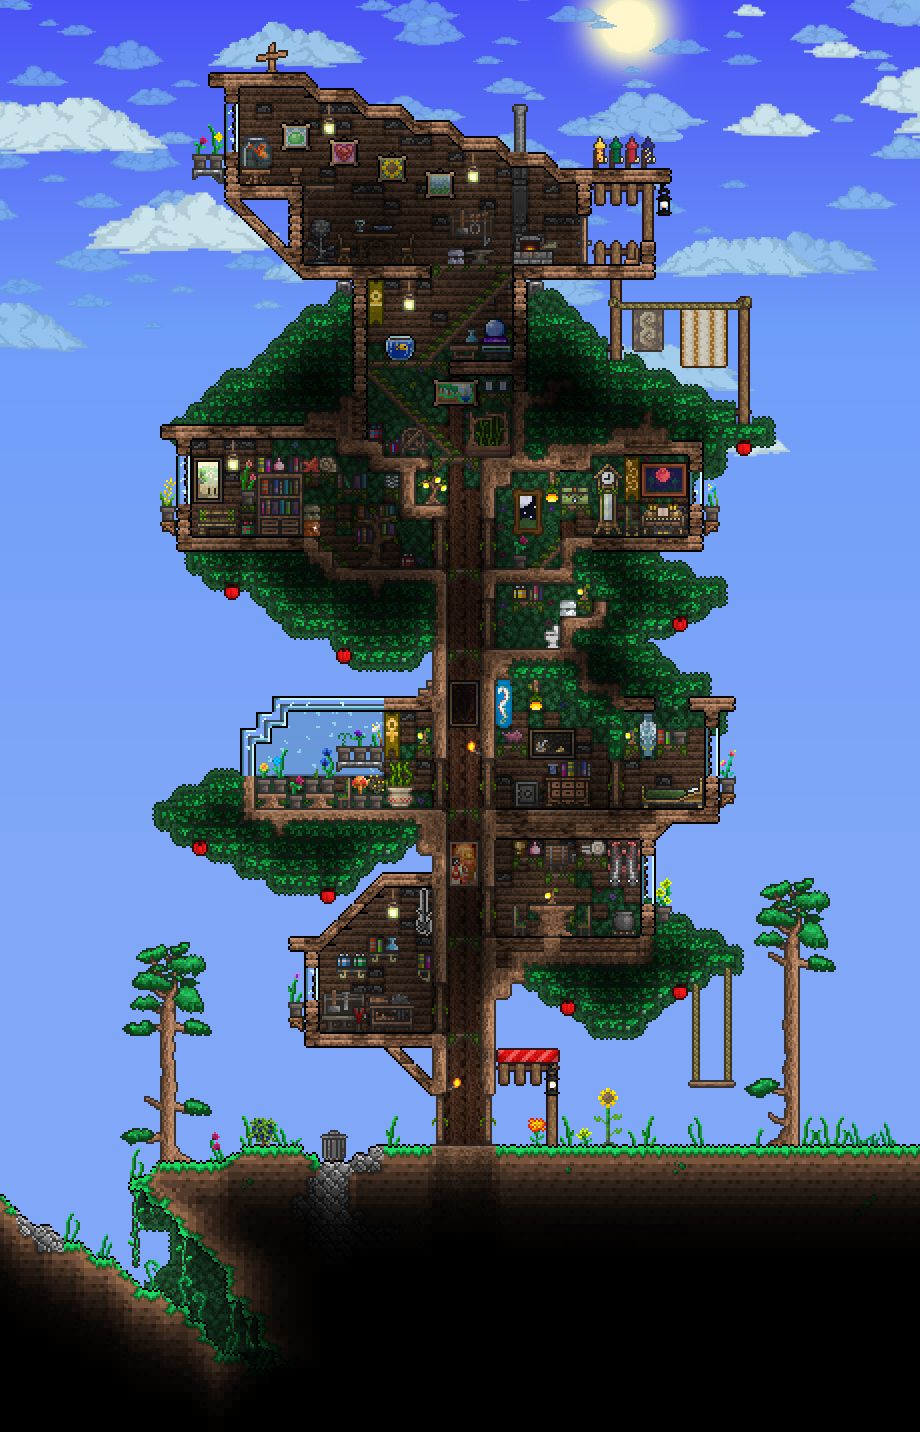 Pin by Jeremy Sailor on terraria Pinterest Videojuegos